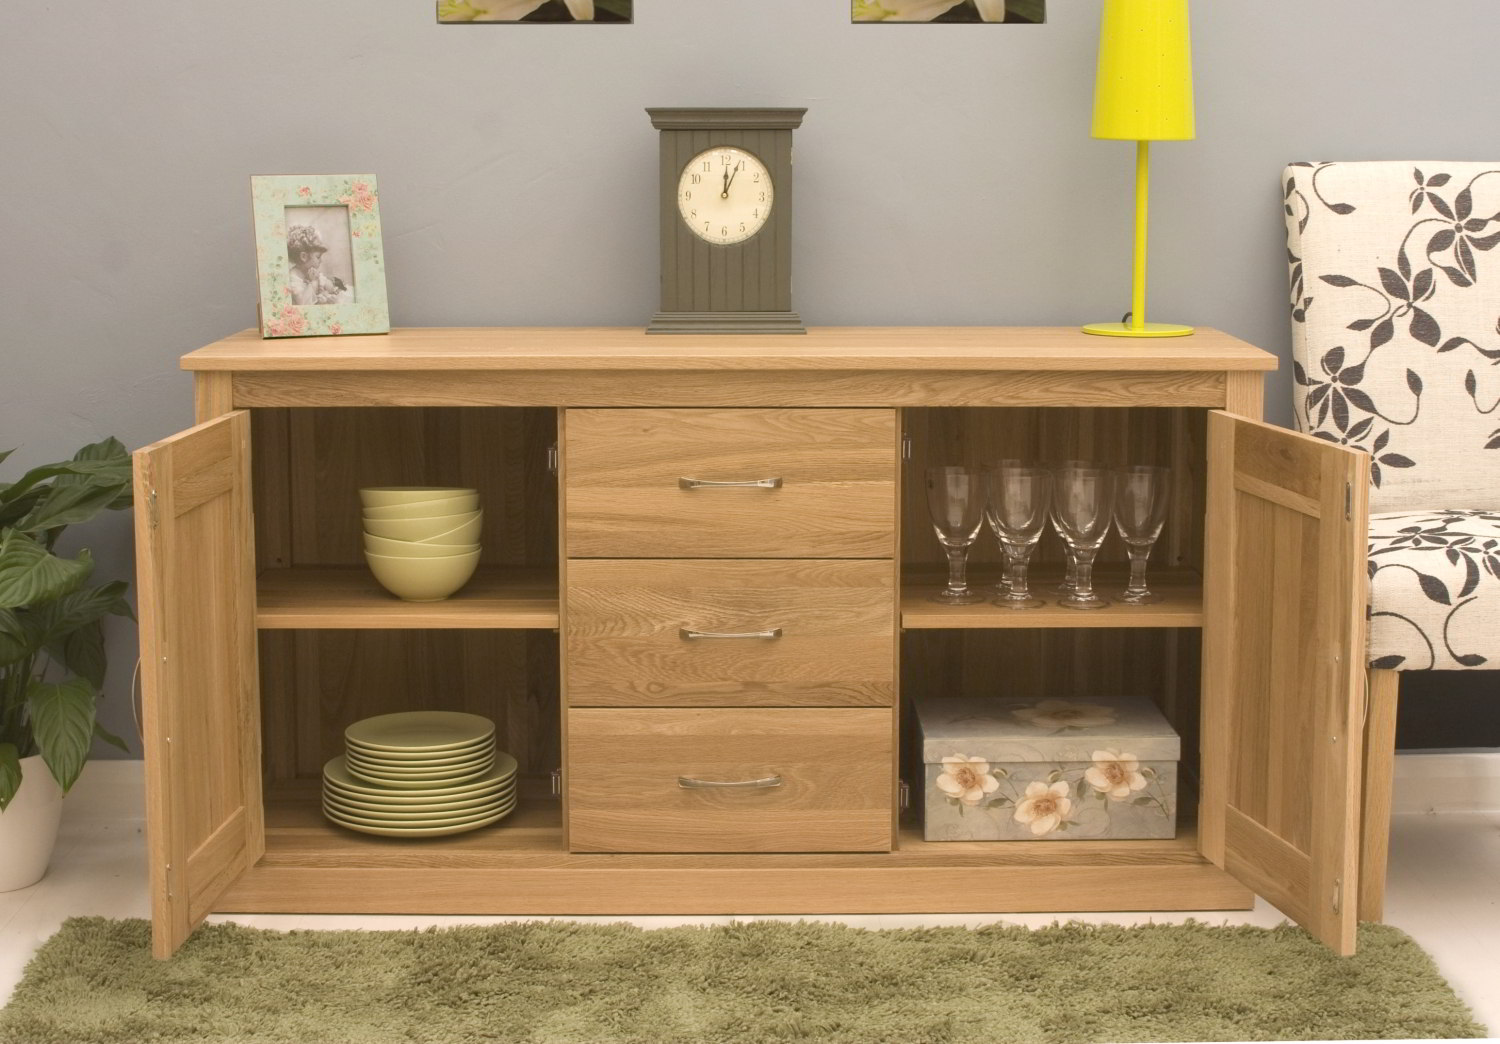 oak contemporary furniture large living dining room sideboard ebay